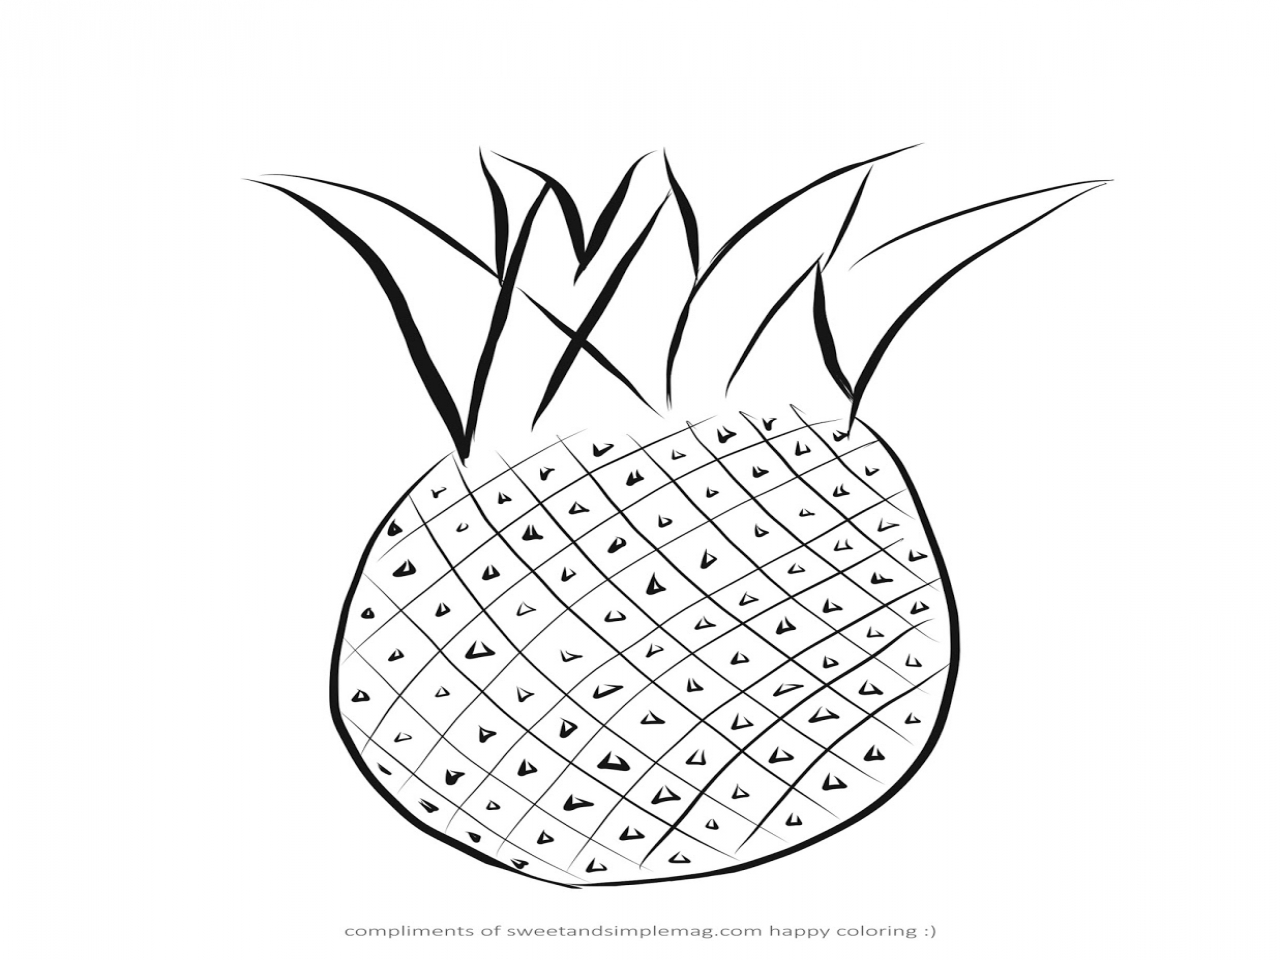 1280x960 Pineapple Coloring Page Sweet And Simple Magazine Pages